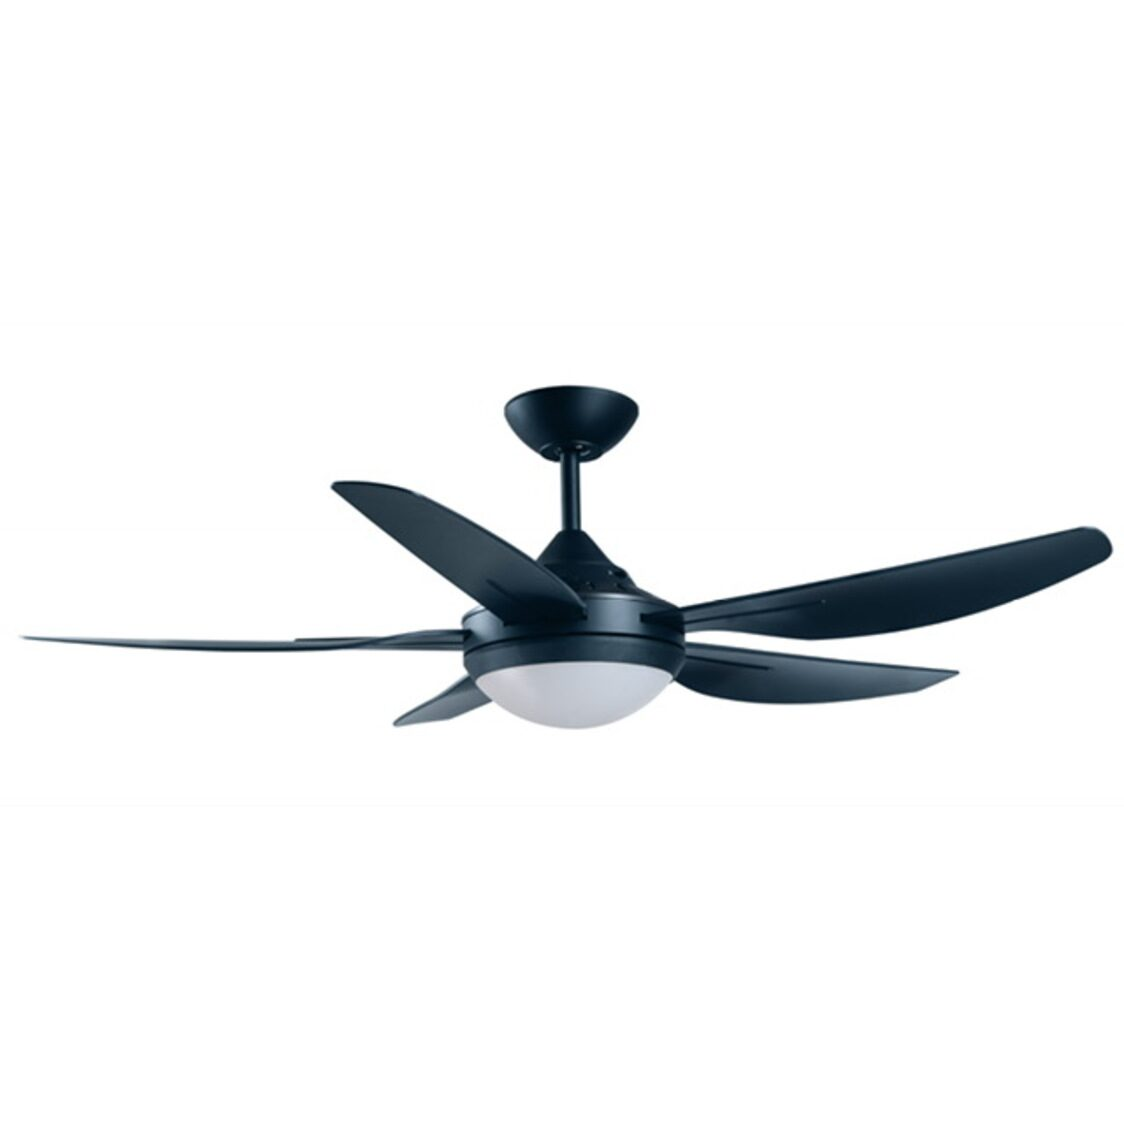 Mandurah Ceiling Fan With Remote And Tri-Color Led Light Kit Black 48